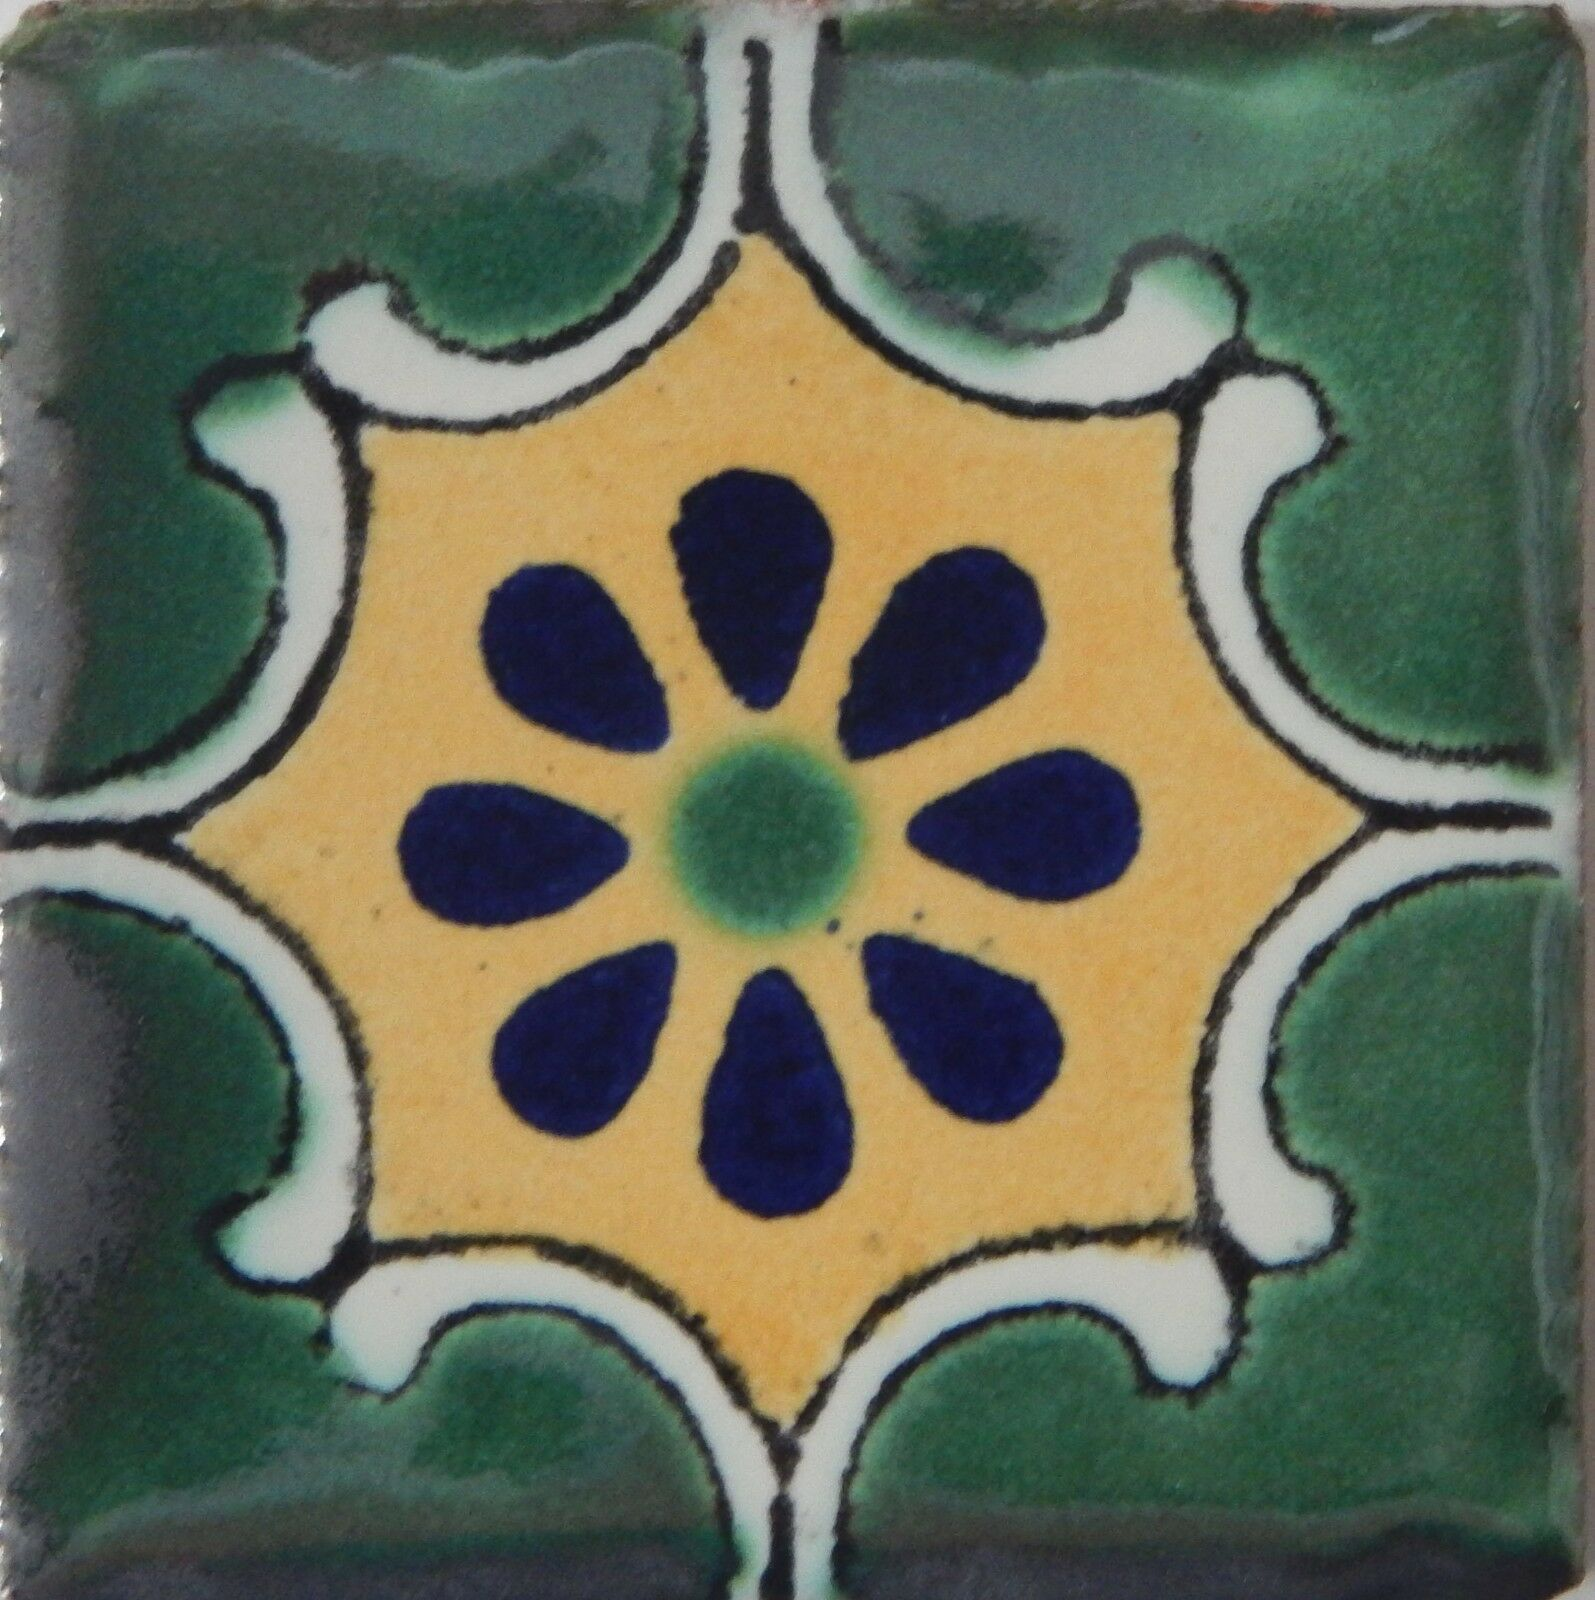 50 tiles ceramic mexican talavera handmade tile 2x2 clay mexico picture 1 of 2 dailygadgetfo Gallery